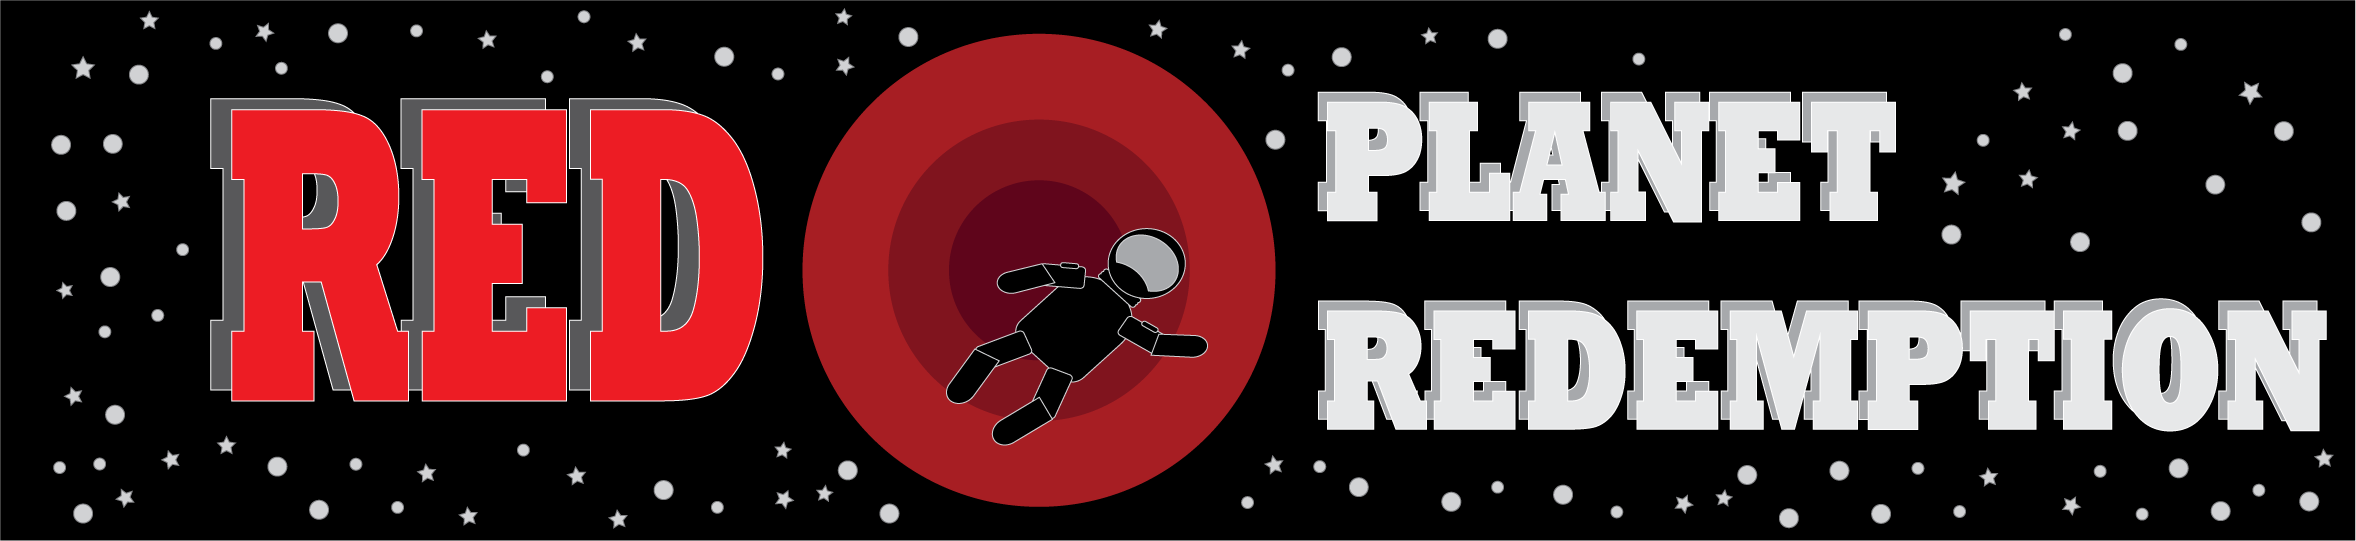 RED: Planet Redemption